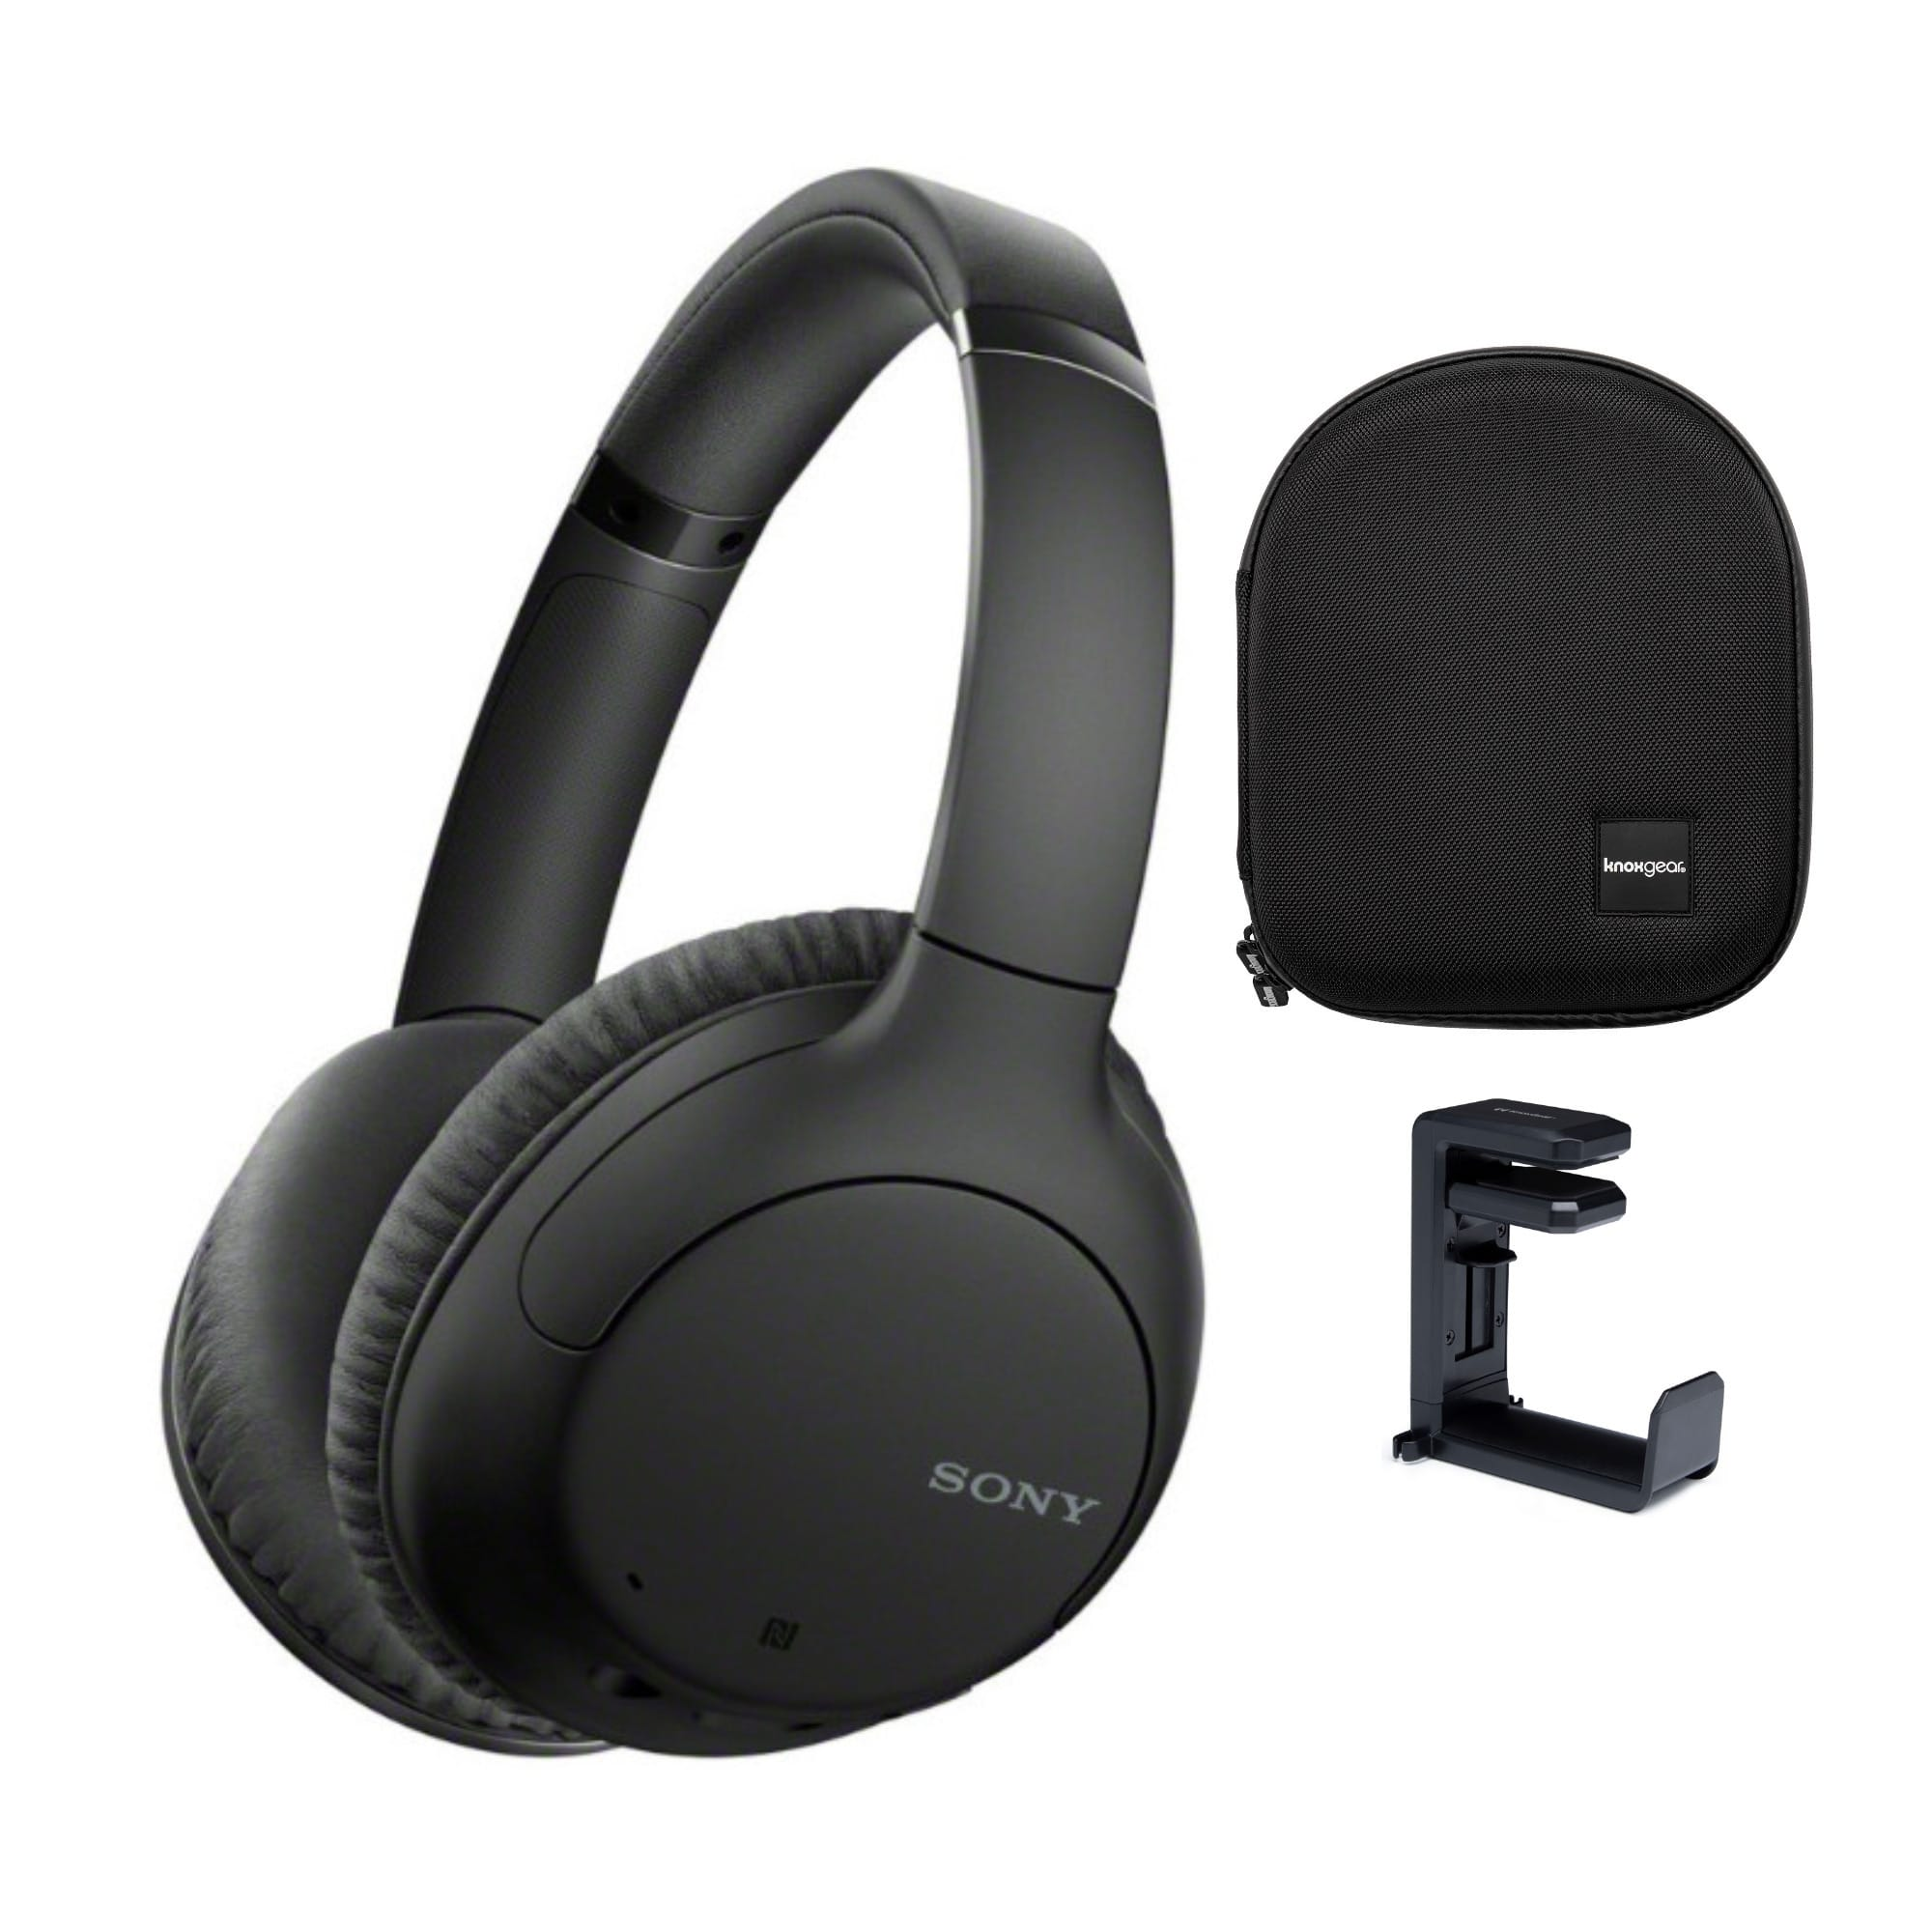 Sony WHCH710N Wireless Bluetooth Noise Canceling Over-the-Ear Headphones + Headphone Case + Headphone Hanger Mount $73 + Free Shipping